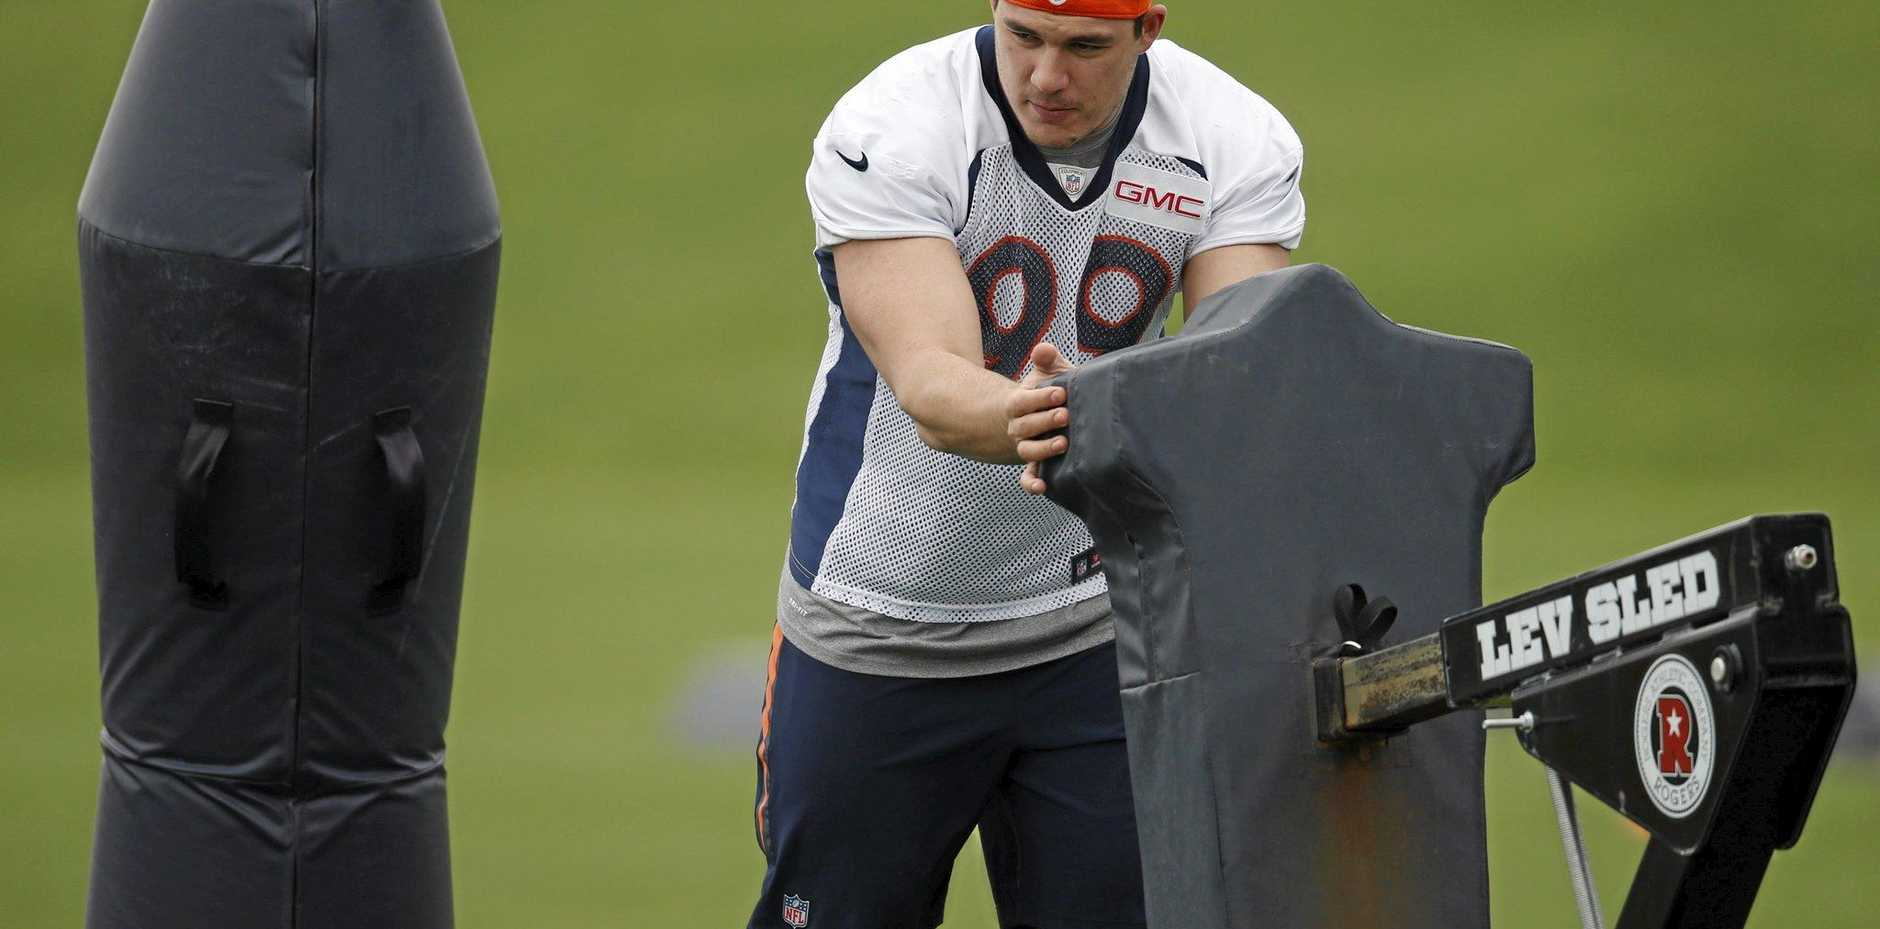 TOP SIGNING: Denver Broncos' Australian rookie Adam Gotsis has a big future in the NFL.